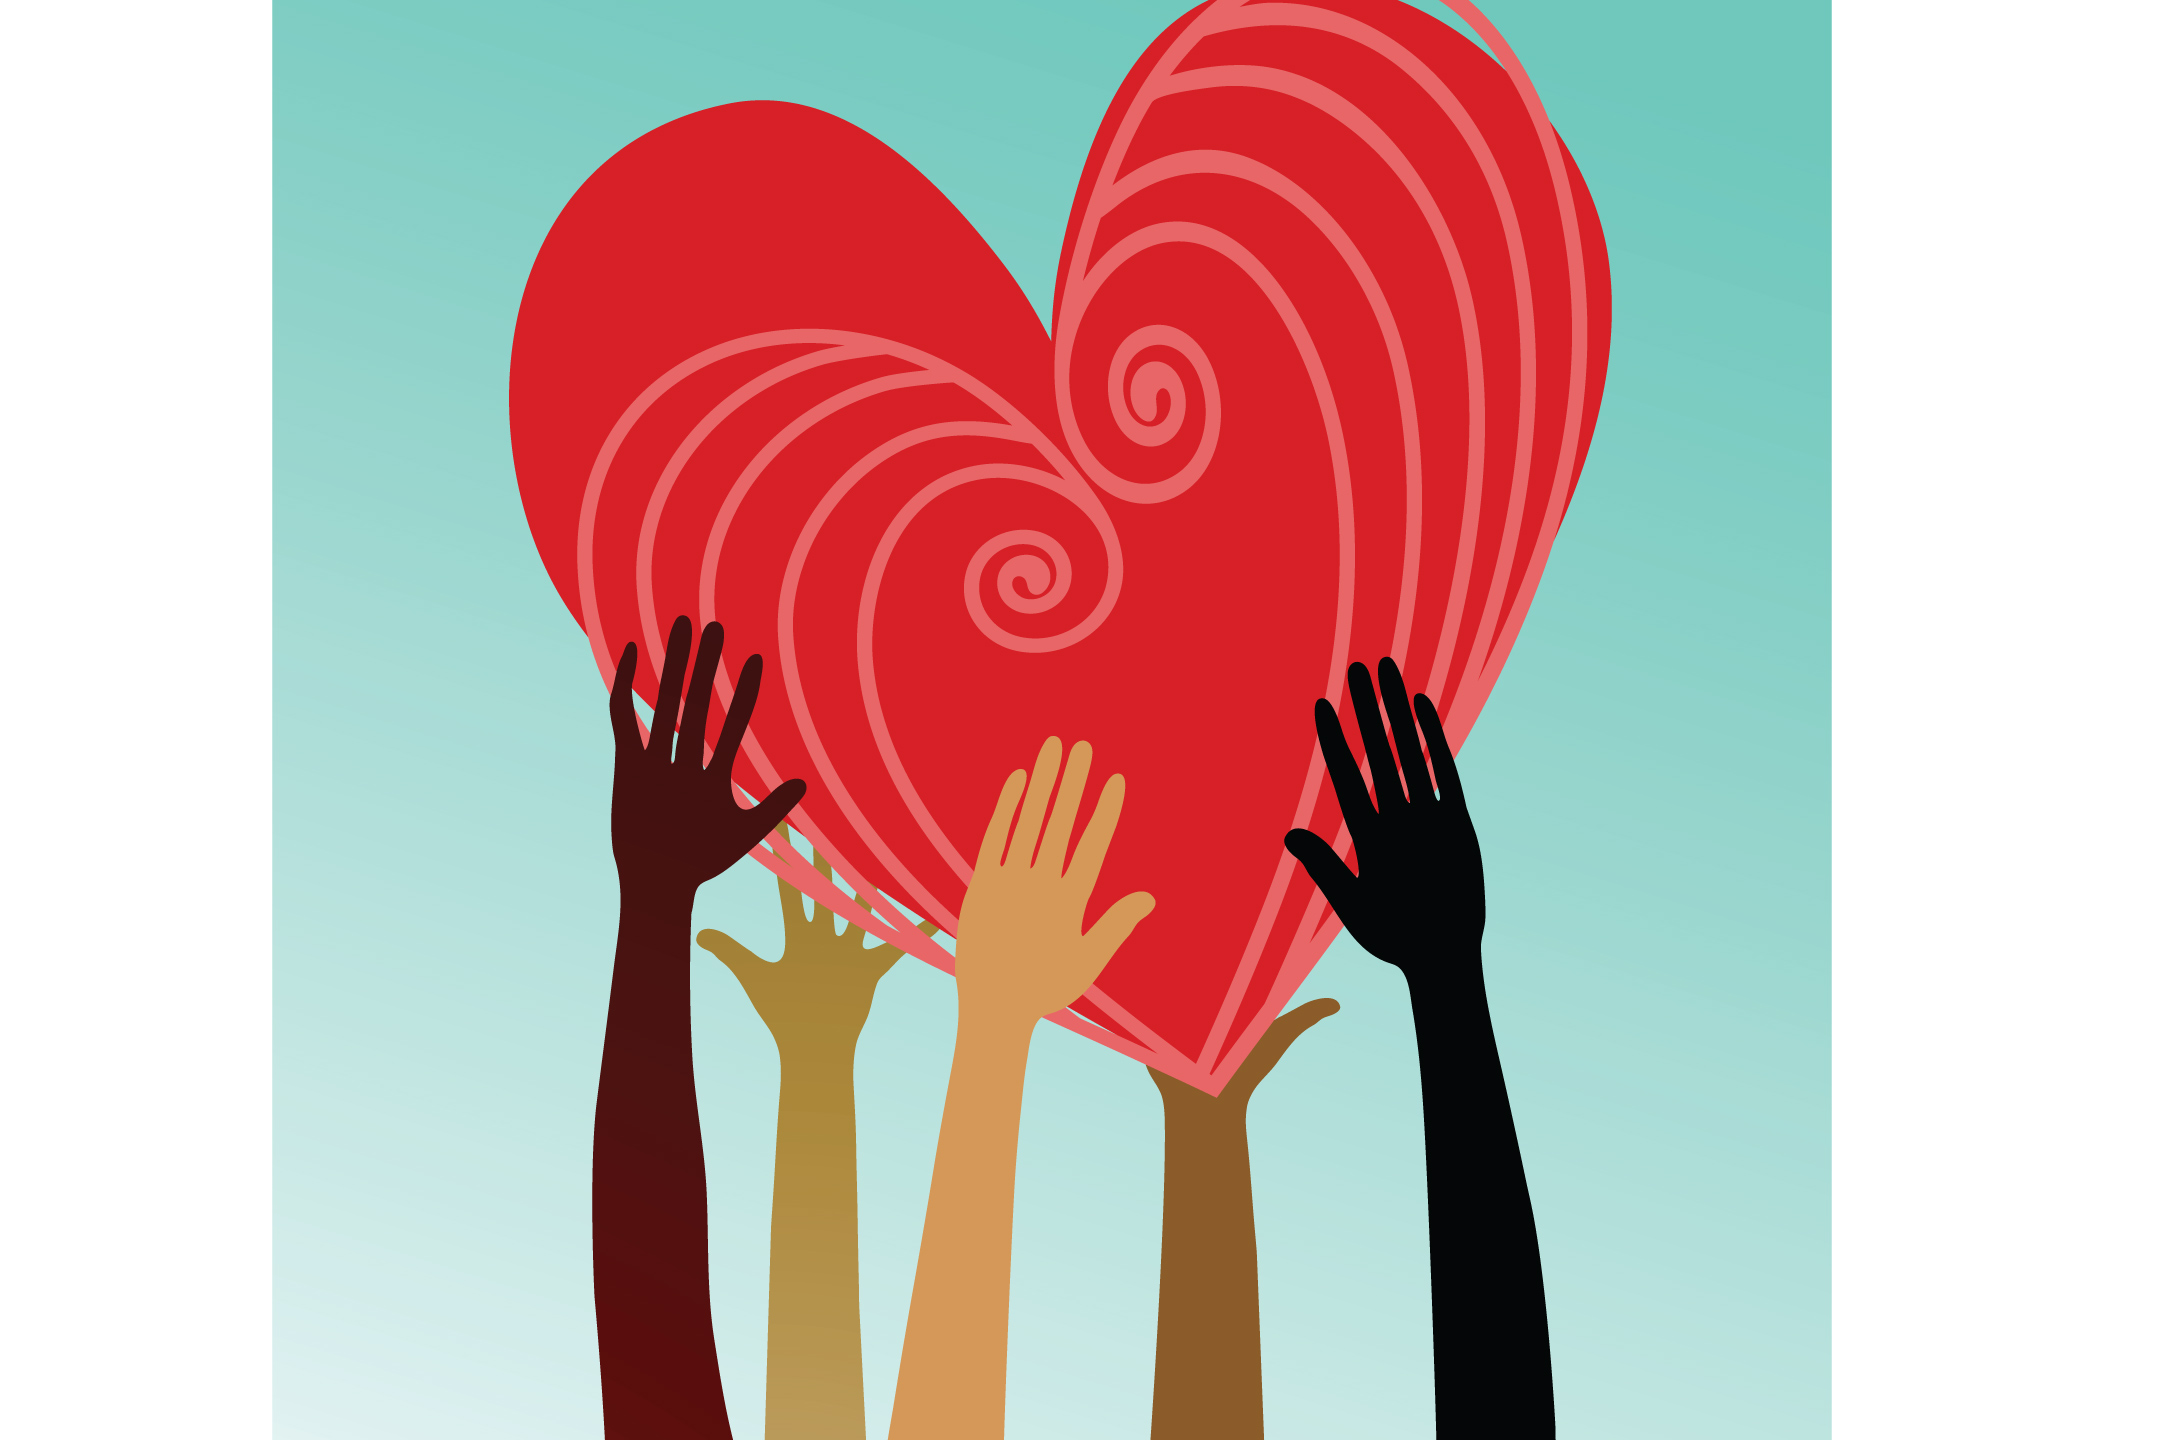 Multicultural-hand-racism-love2160